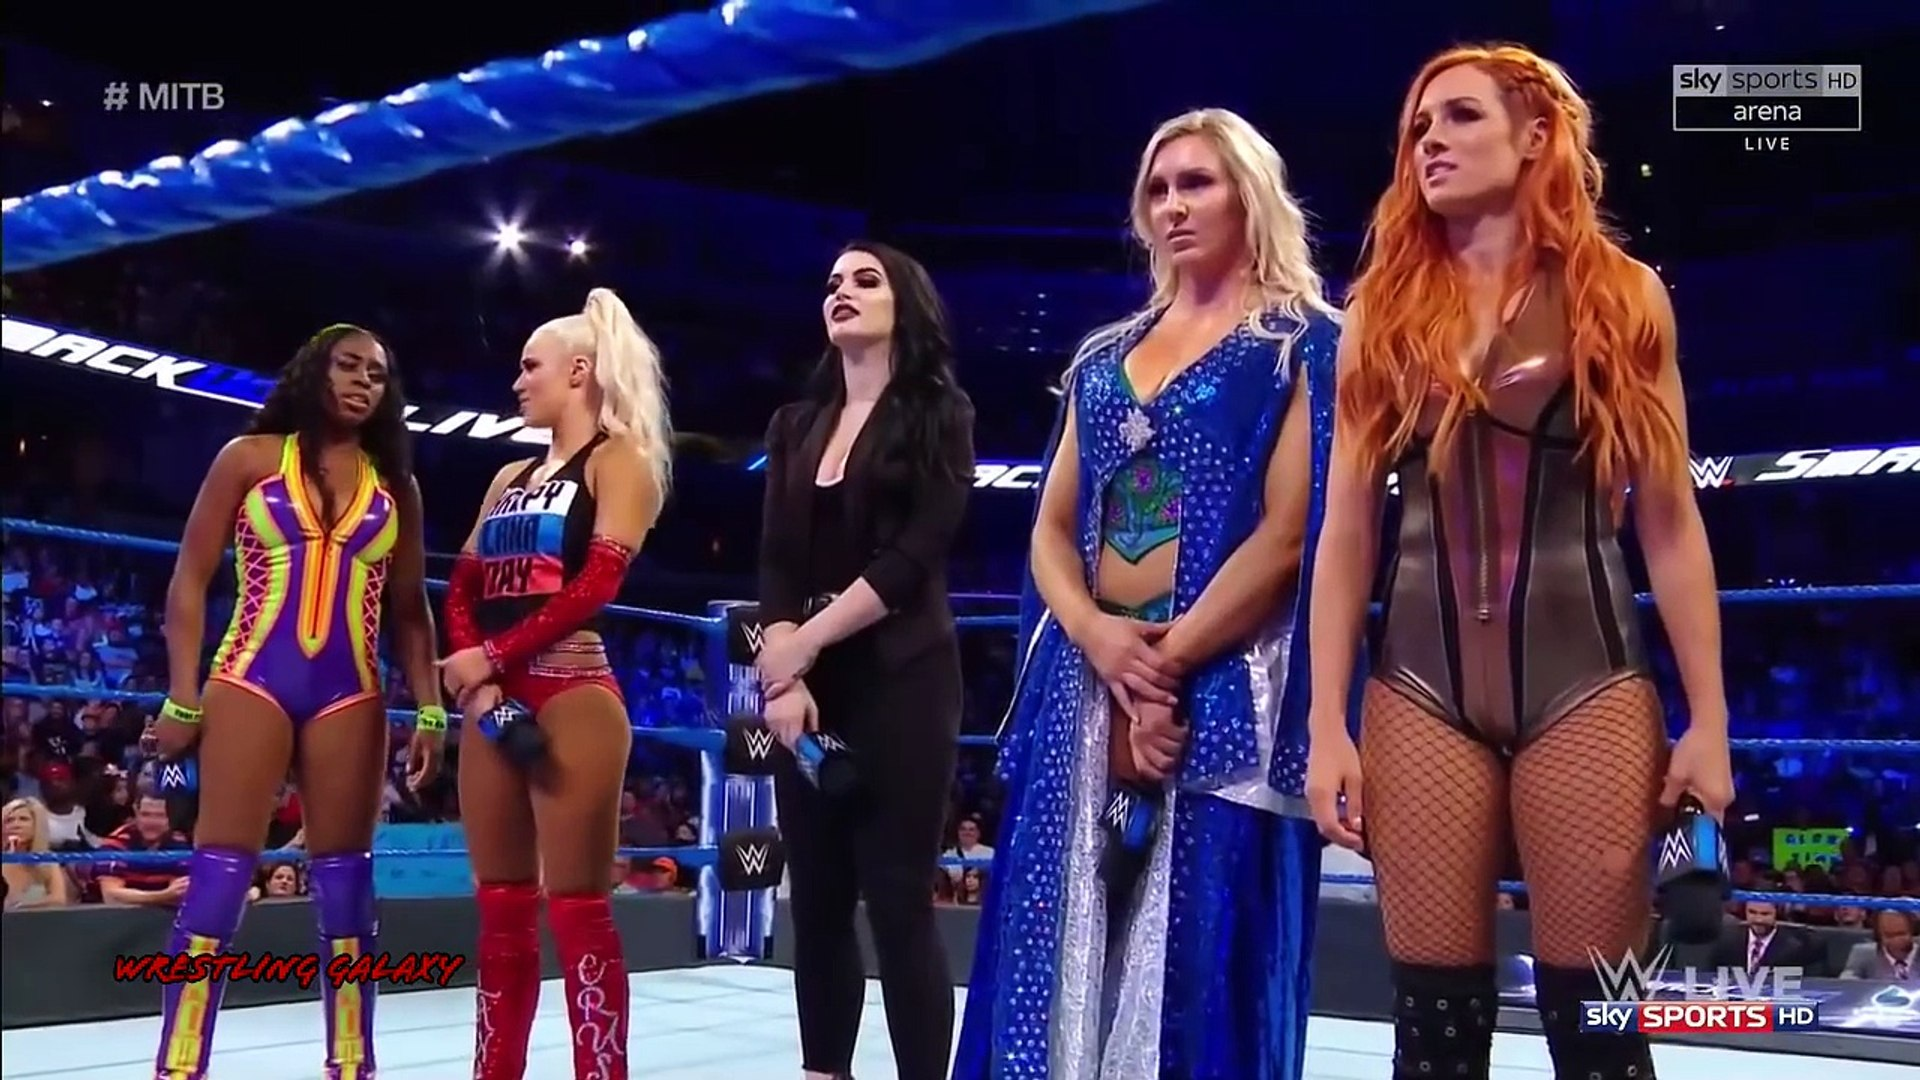 WWE Smackdown Live Highlights HD 6_12_2018 - WWE entertainment